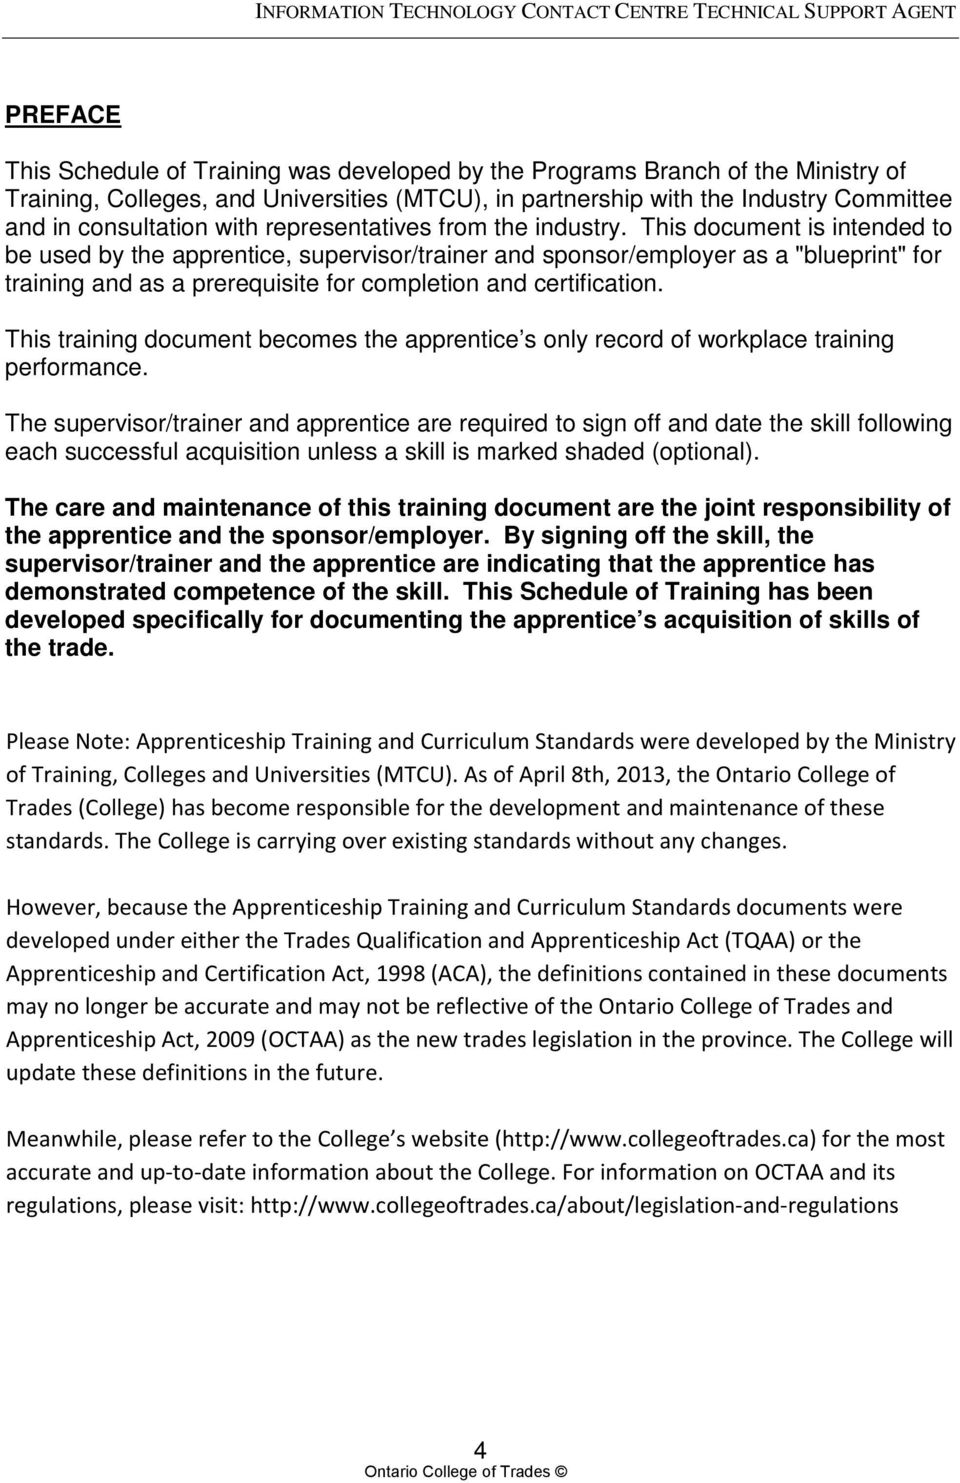 "This document is intended to be used by the apprentice, supervisor/trainer and sponsor/employer as a ""blueprint"" for training and as a prerequisite for completion and certification."